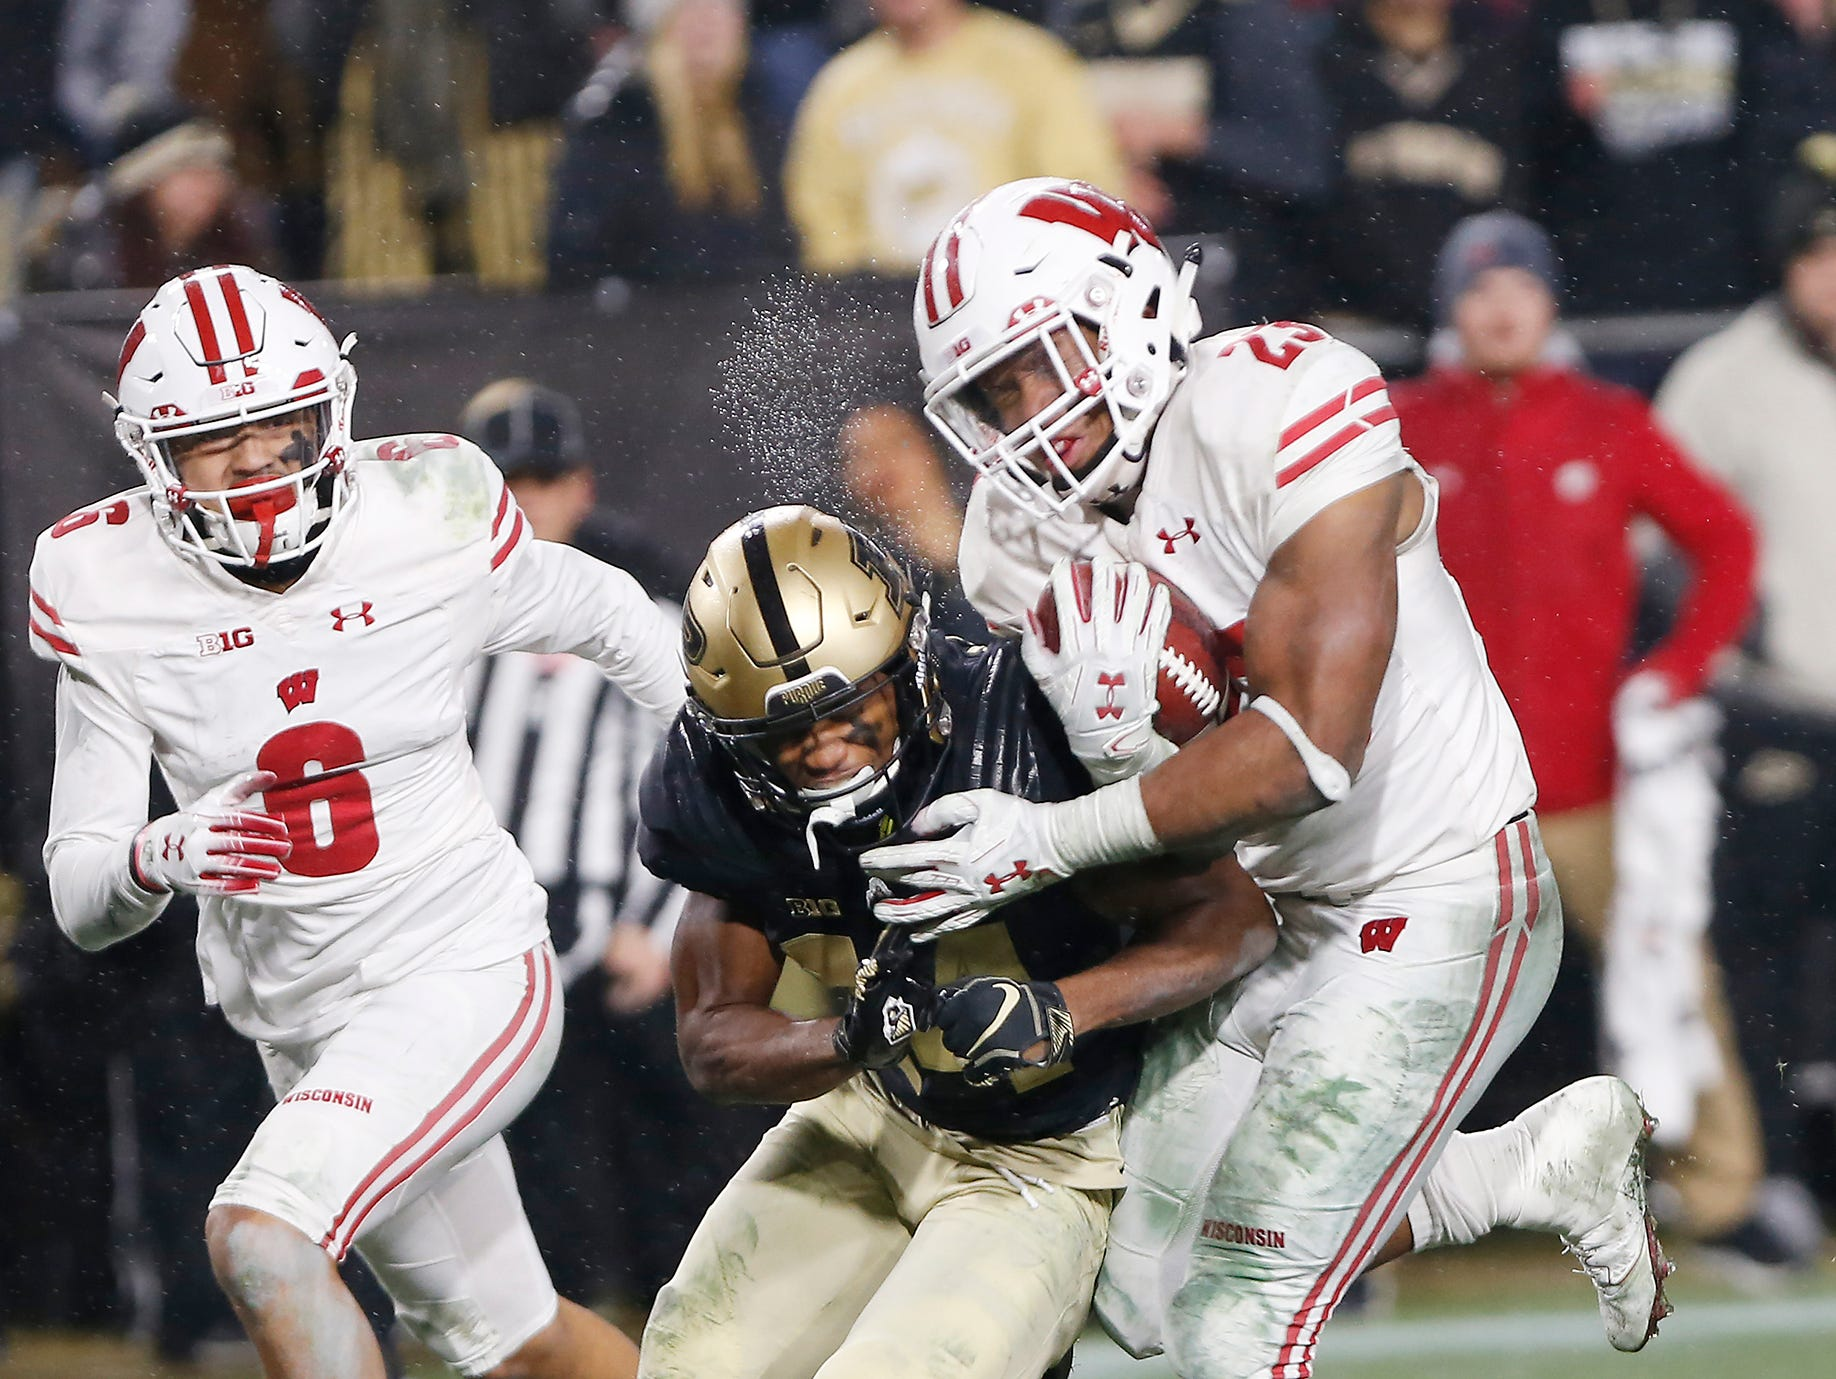 Jonathon Taylor of Wisconsin runs over Antonio Blackmon of Purdue as he rushes for the winning touchdown in the third overtime period Saturday, November 17, 2018, at Ross-Ade Stadium. Purdue fell to Wisconsin 47-44 3OT.